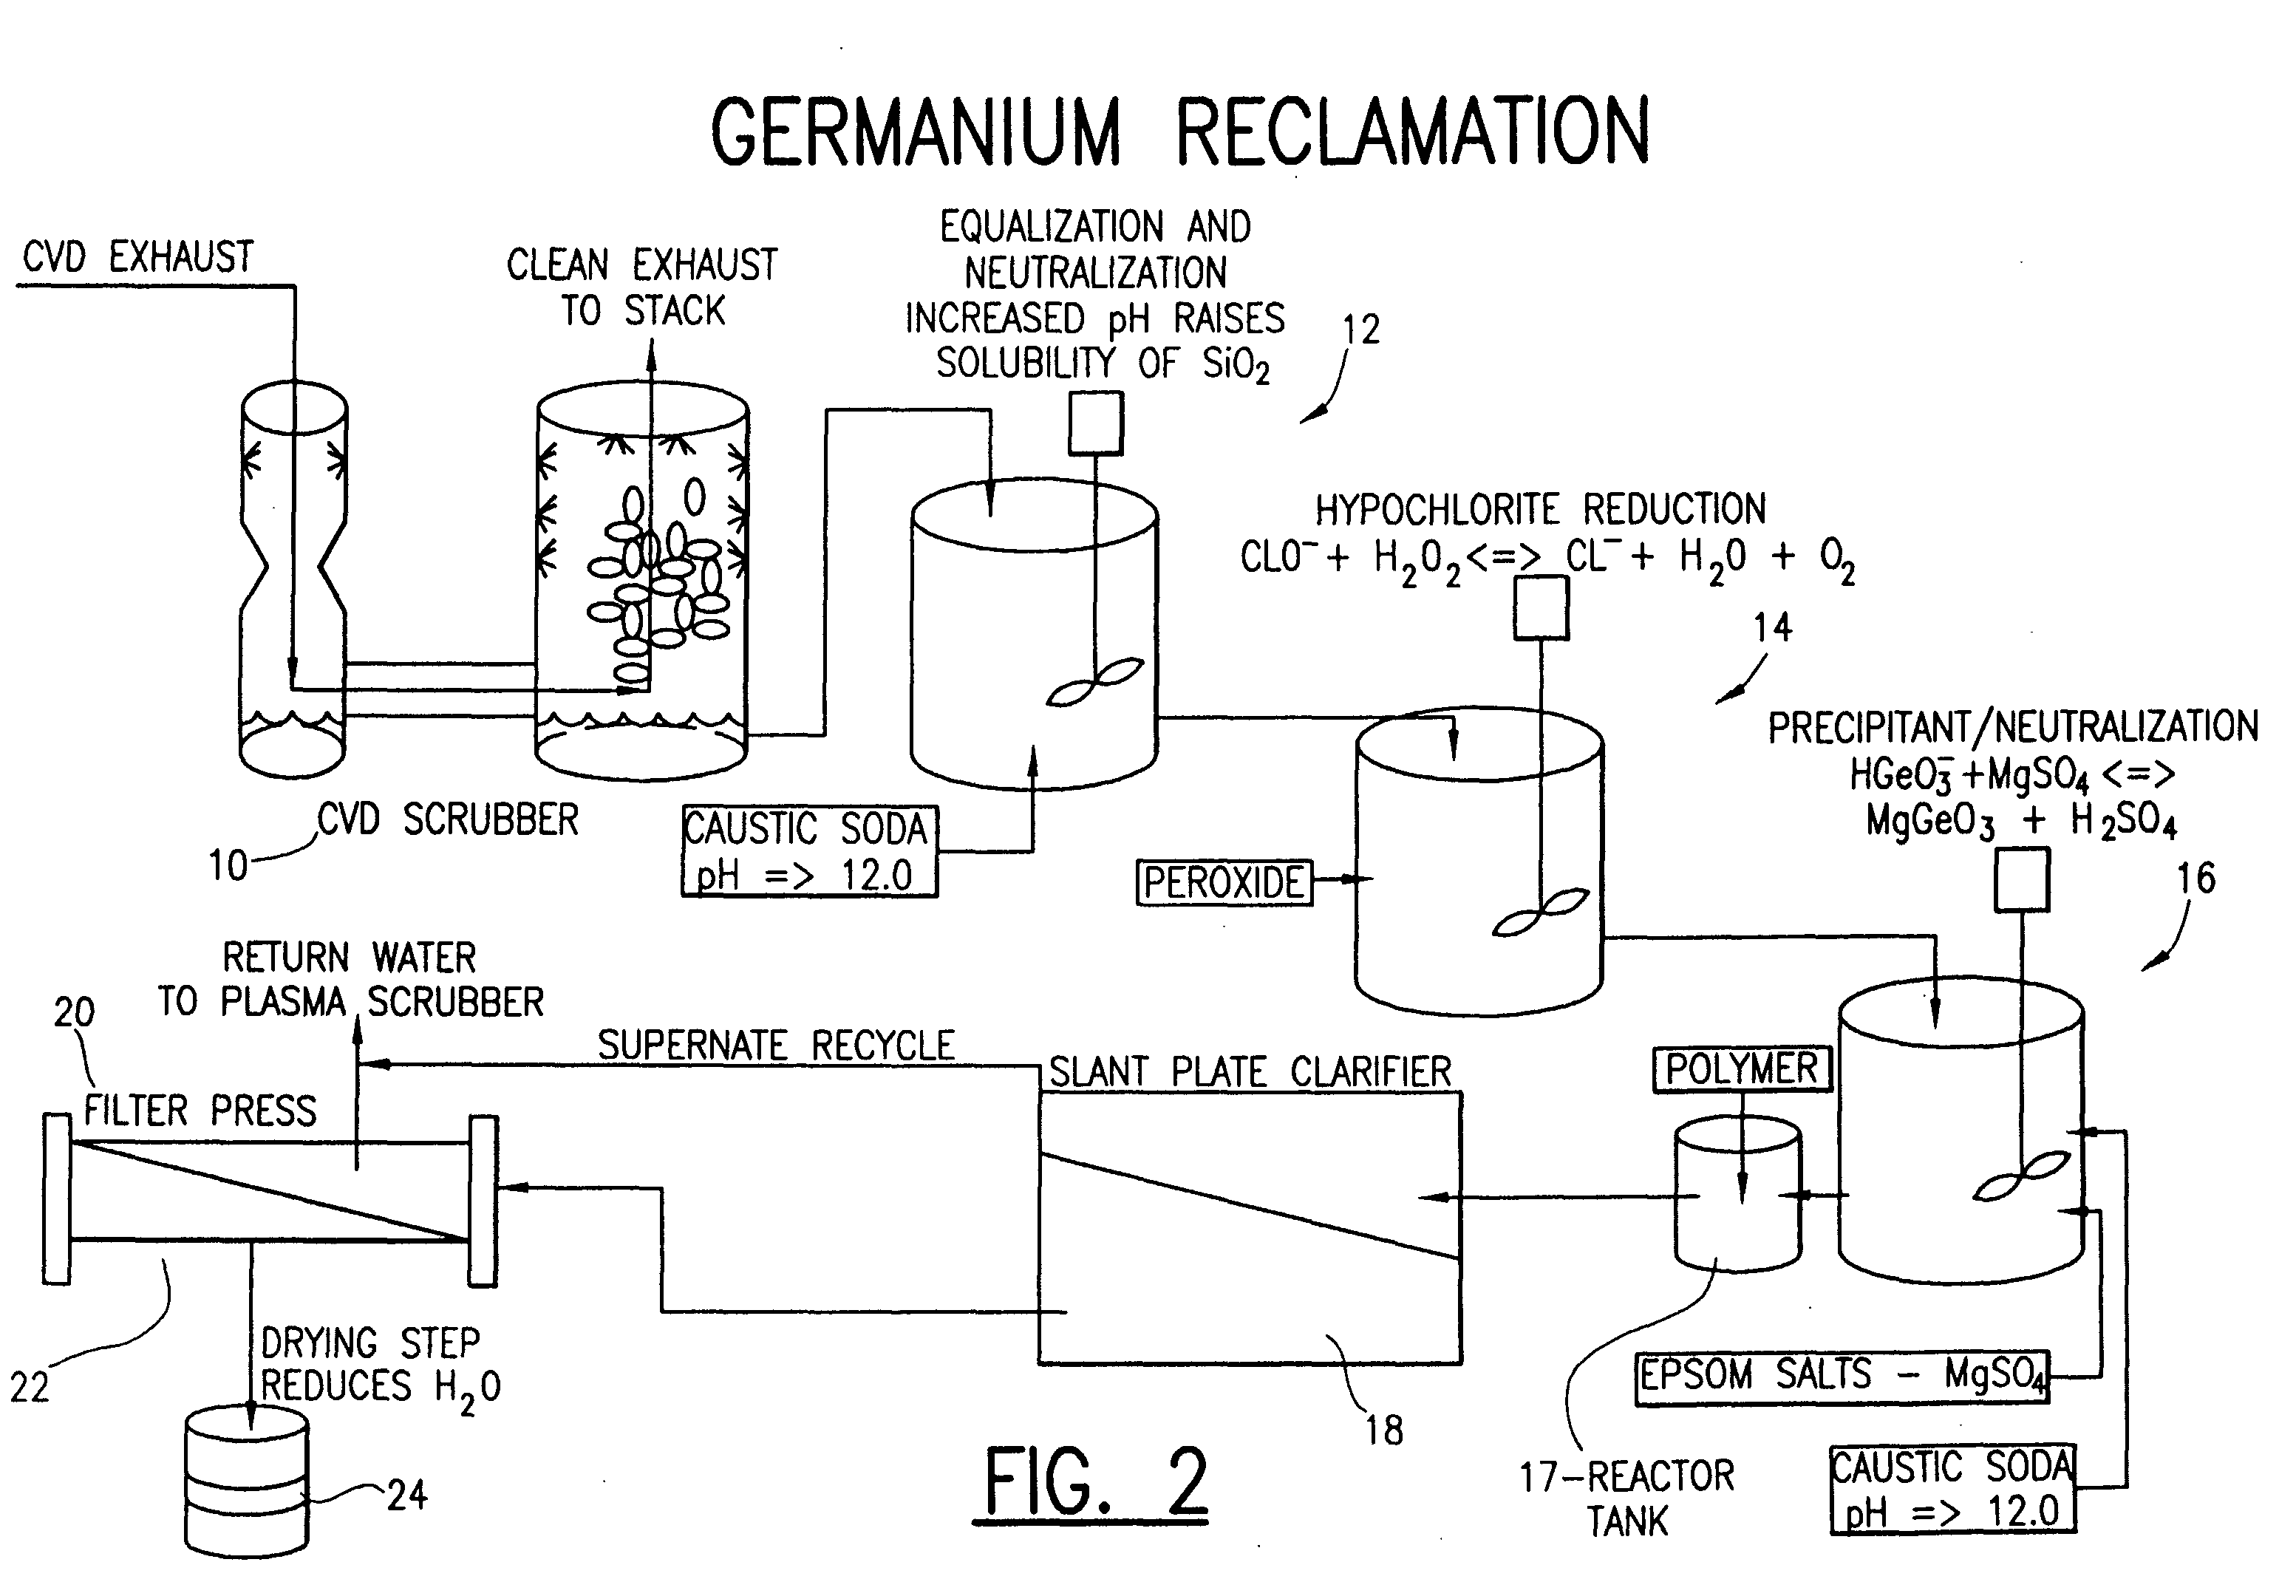 Method and apparatus for germanium reclamation from chemical vapor deposition